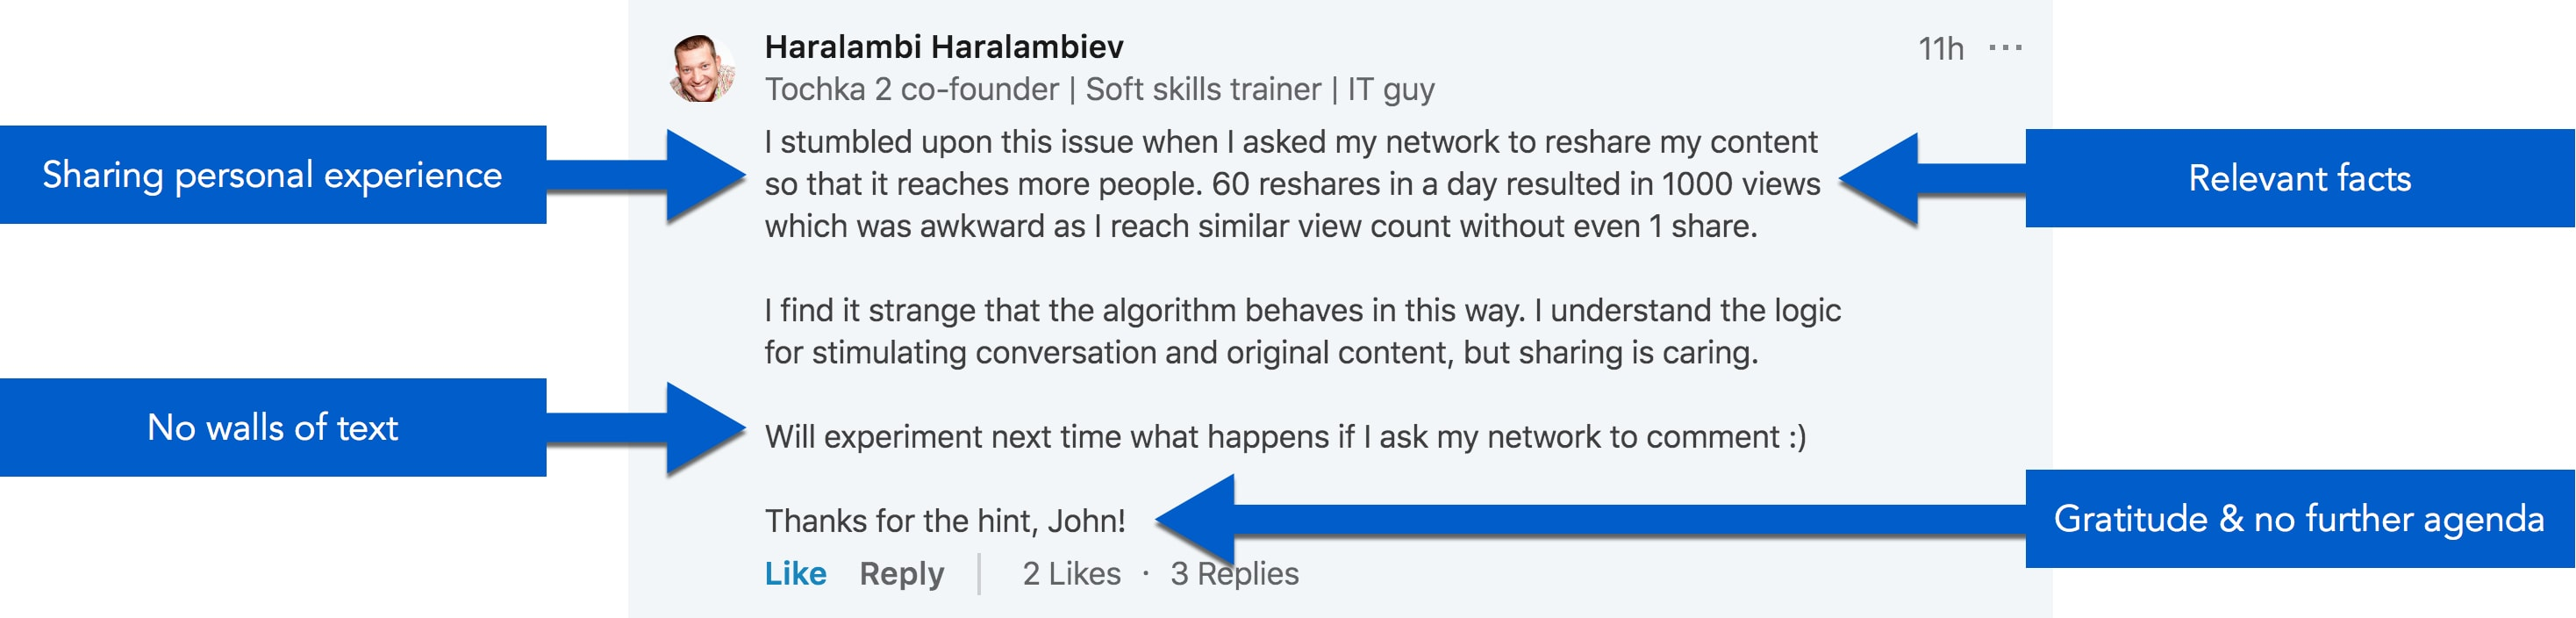 Example of a good LinkedIn comment